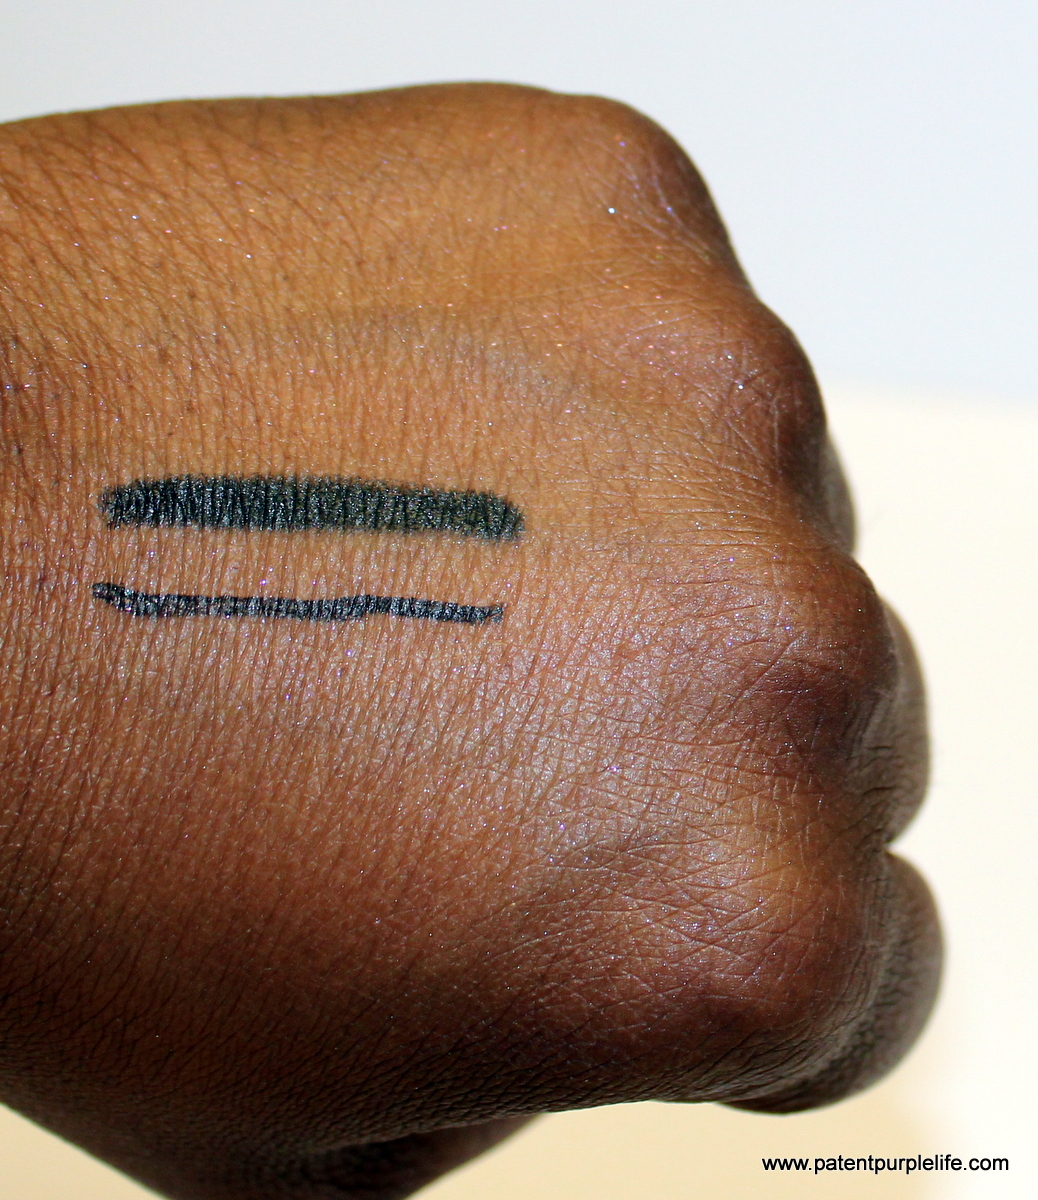 Ciate Double Lines Swatch Dark Skin